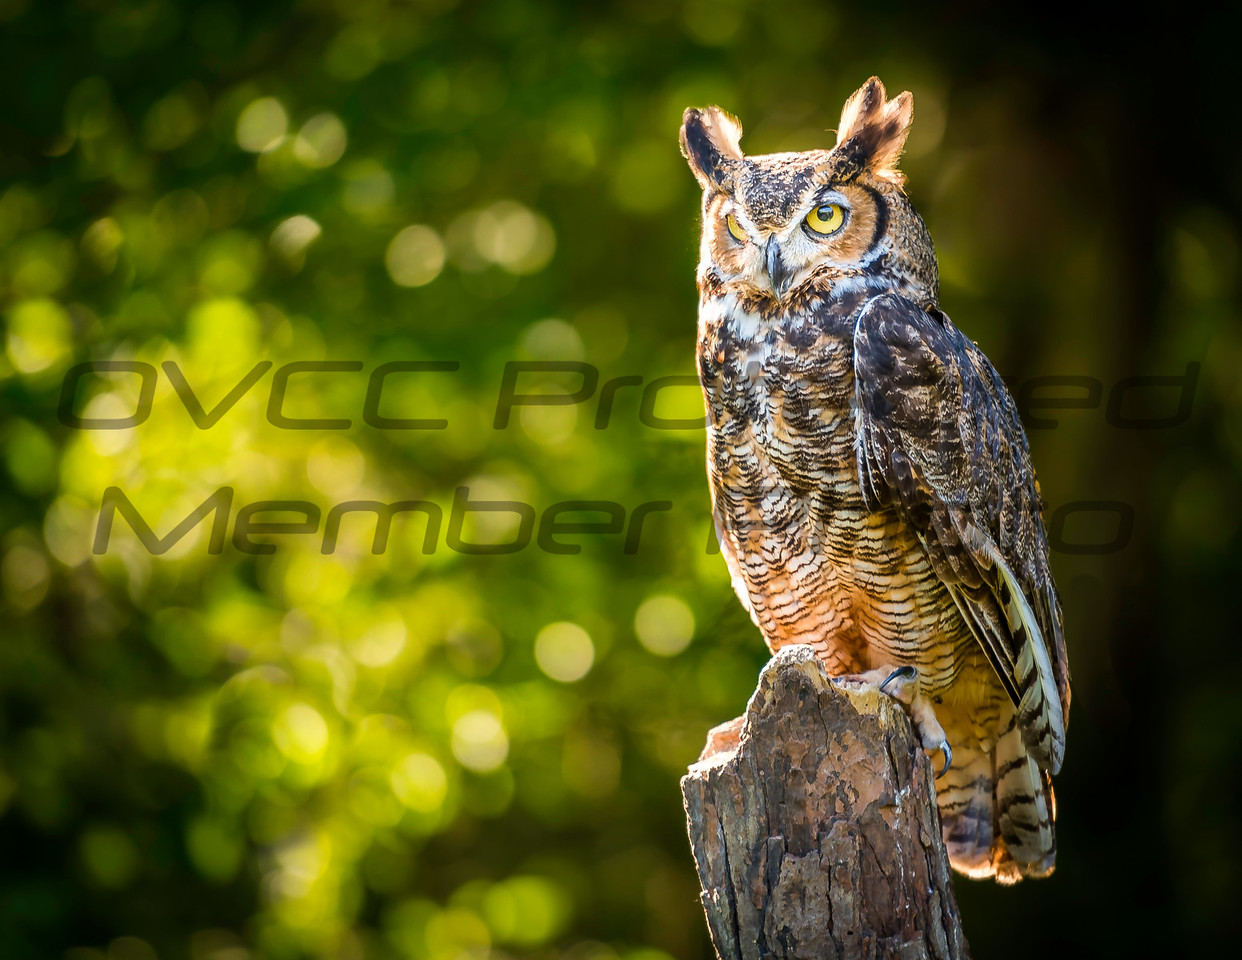 Great Horned Owl in the Sun  by Jonathan Neeld - jn4photo@gmail.com